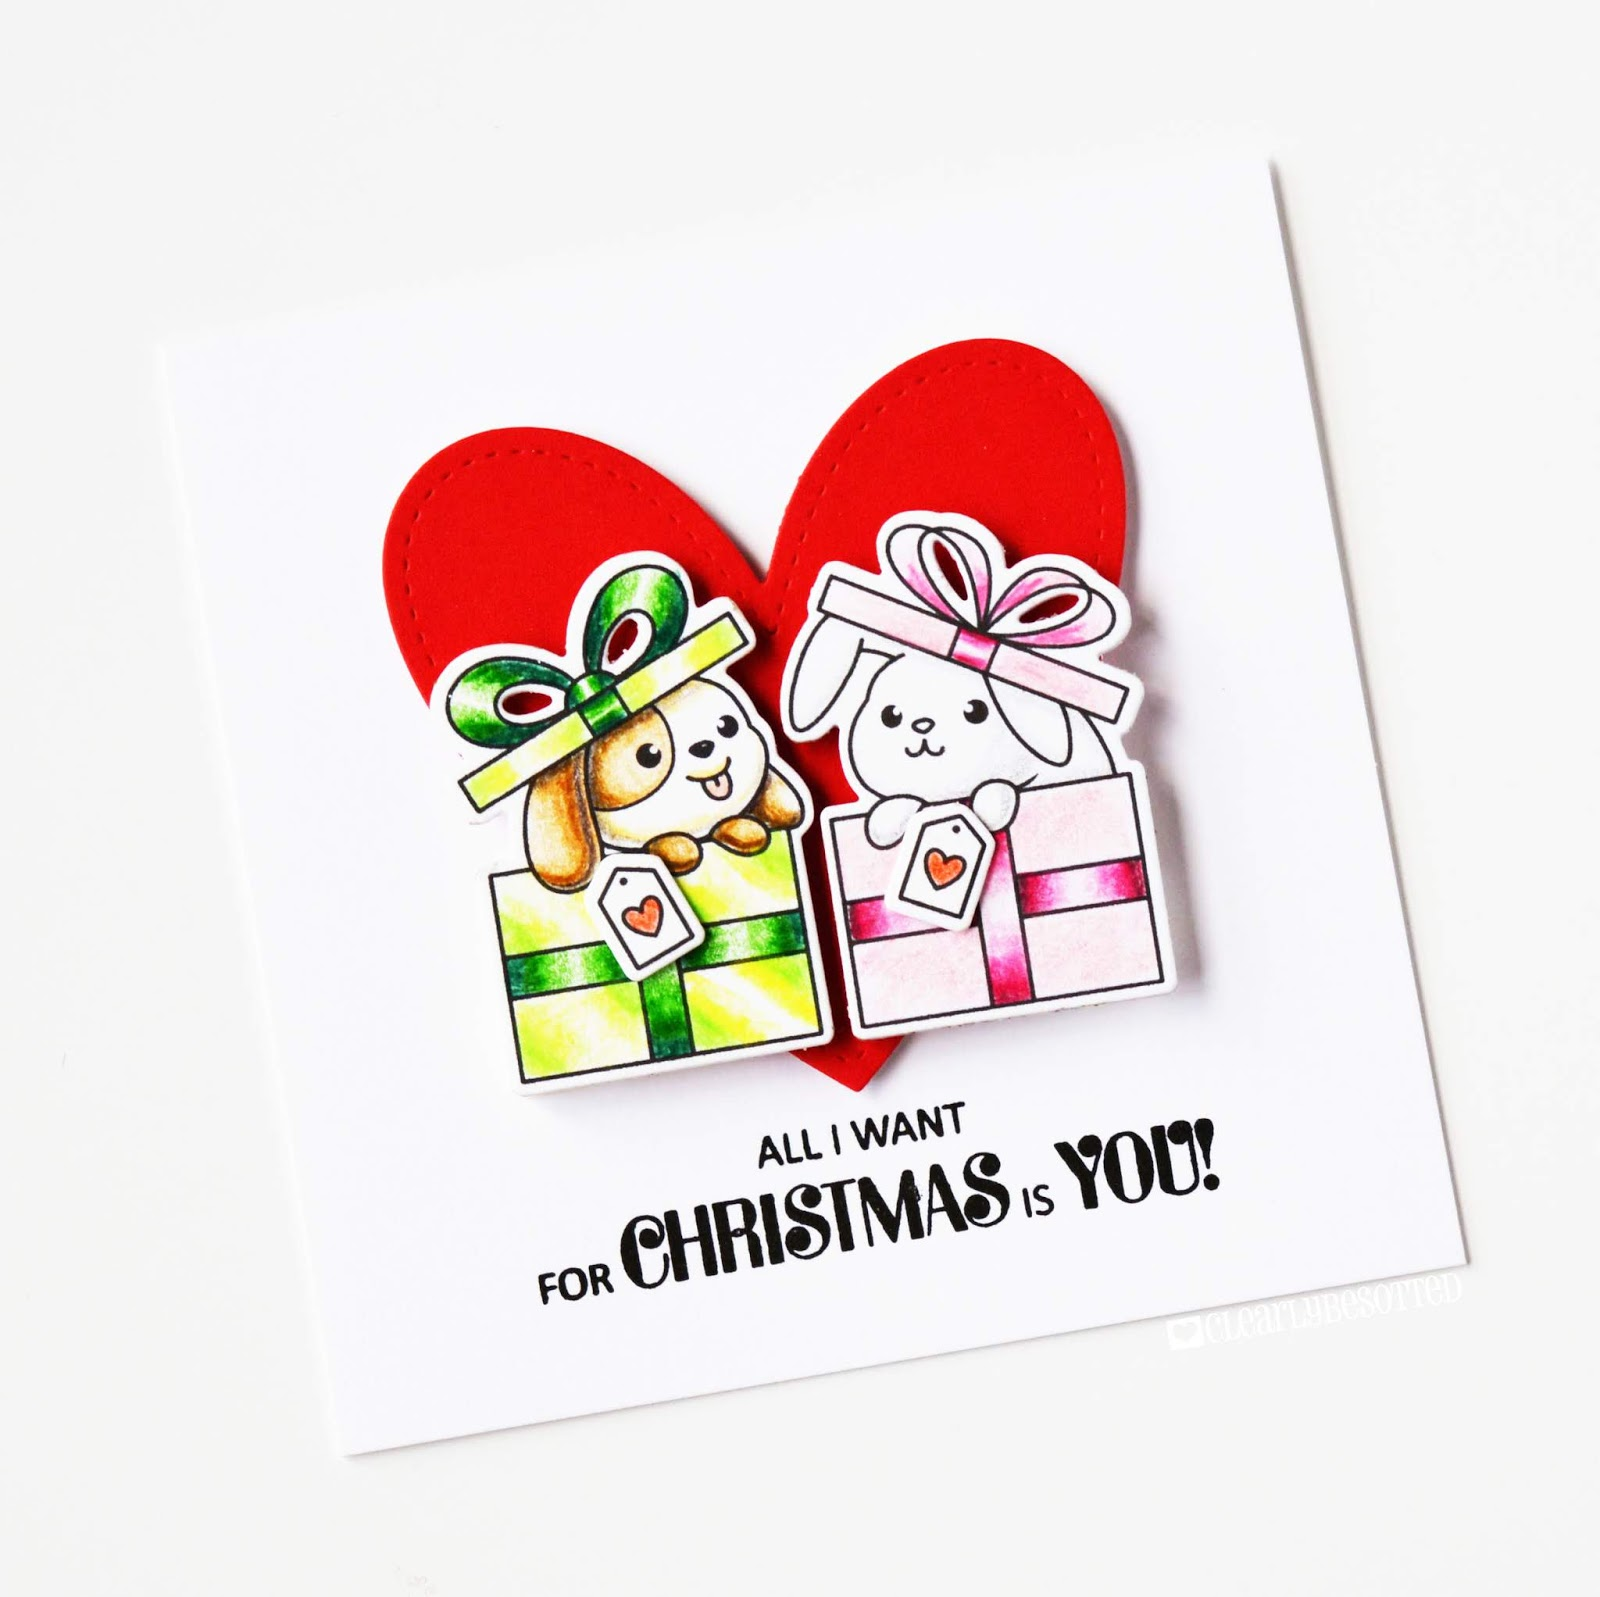 Stamping & Sharing: All I Want For Christmas Is You